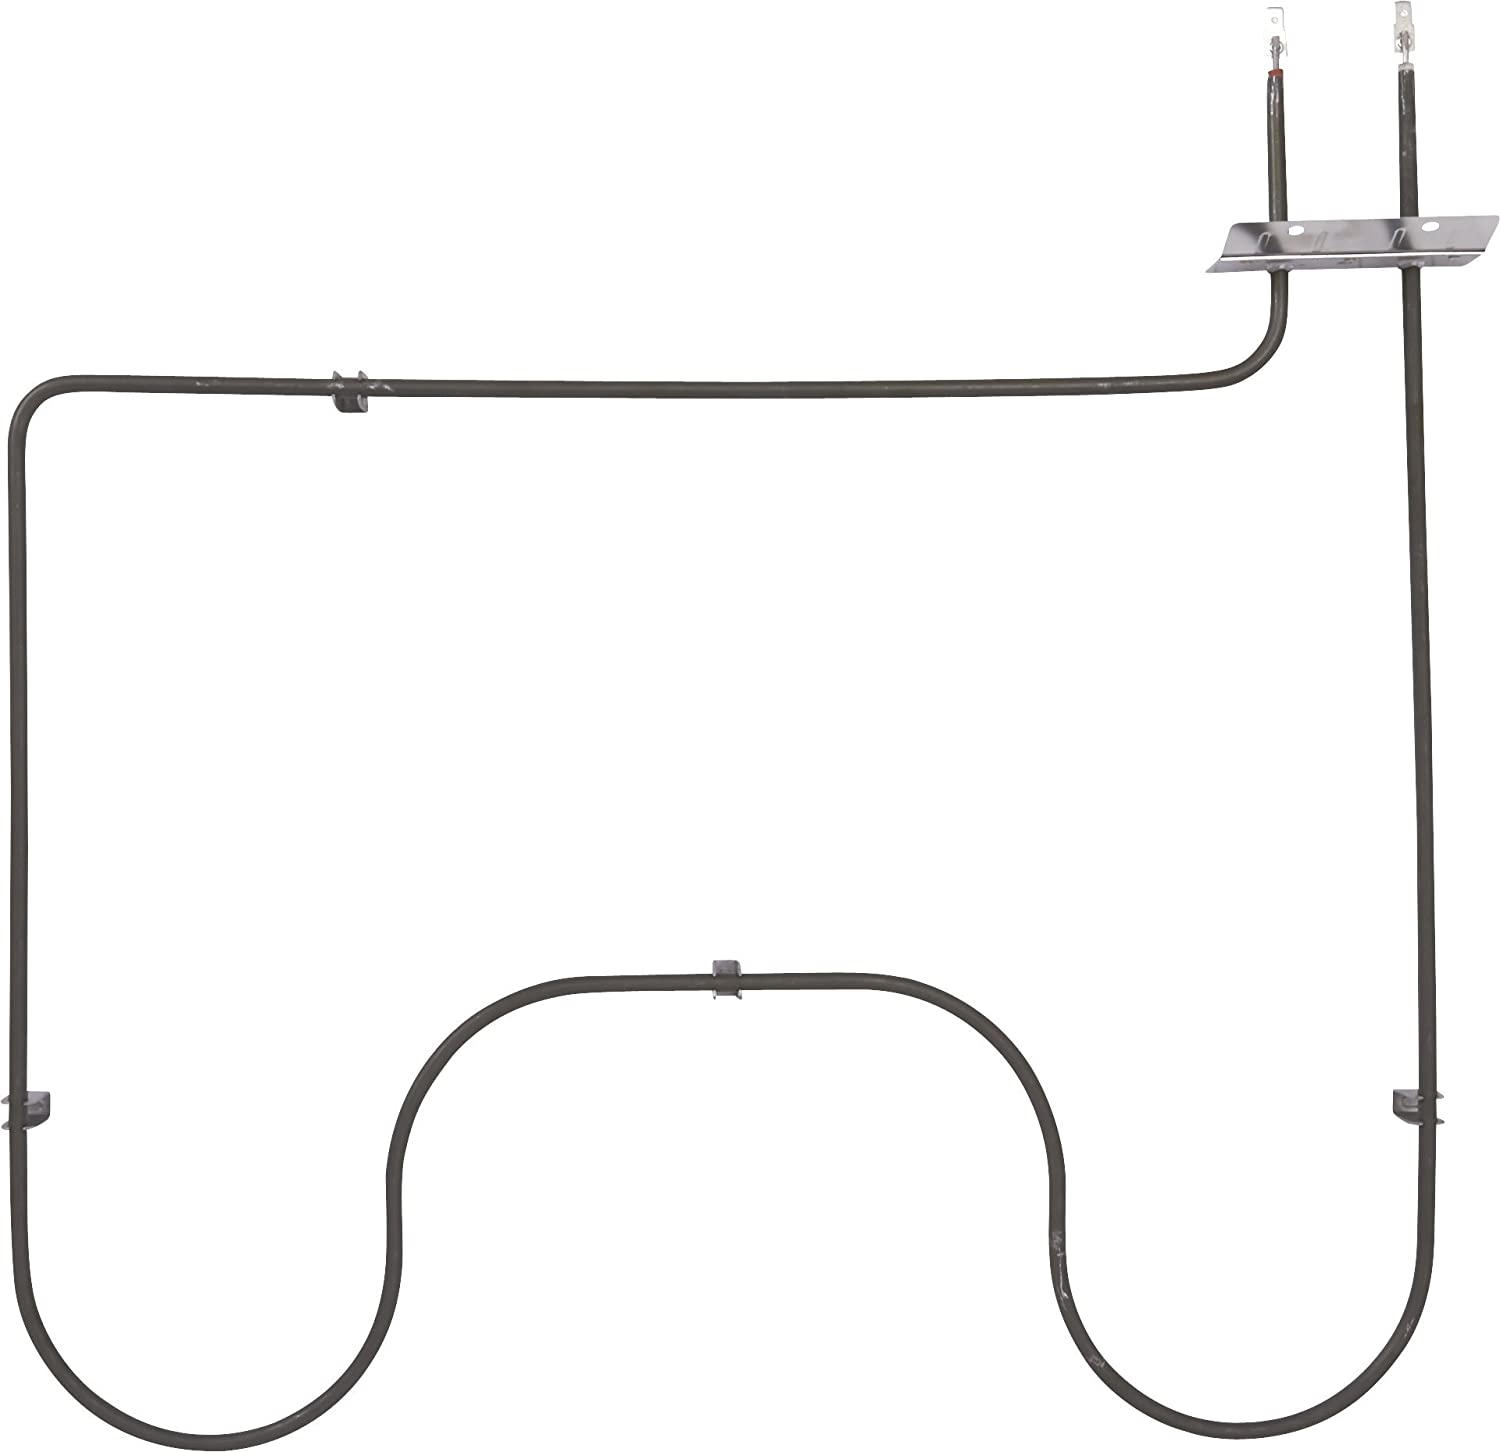 Whirlpool 7406P428-60 Bake Element